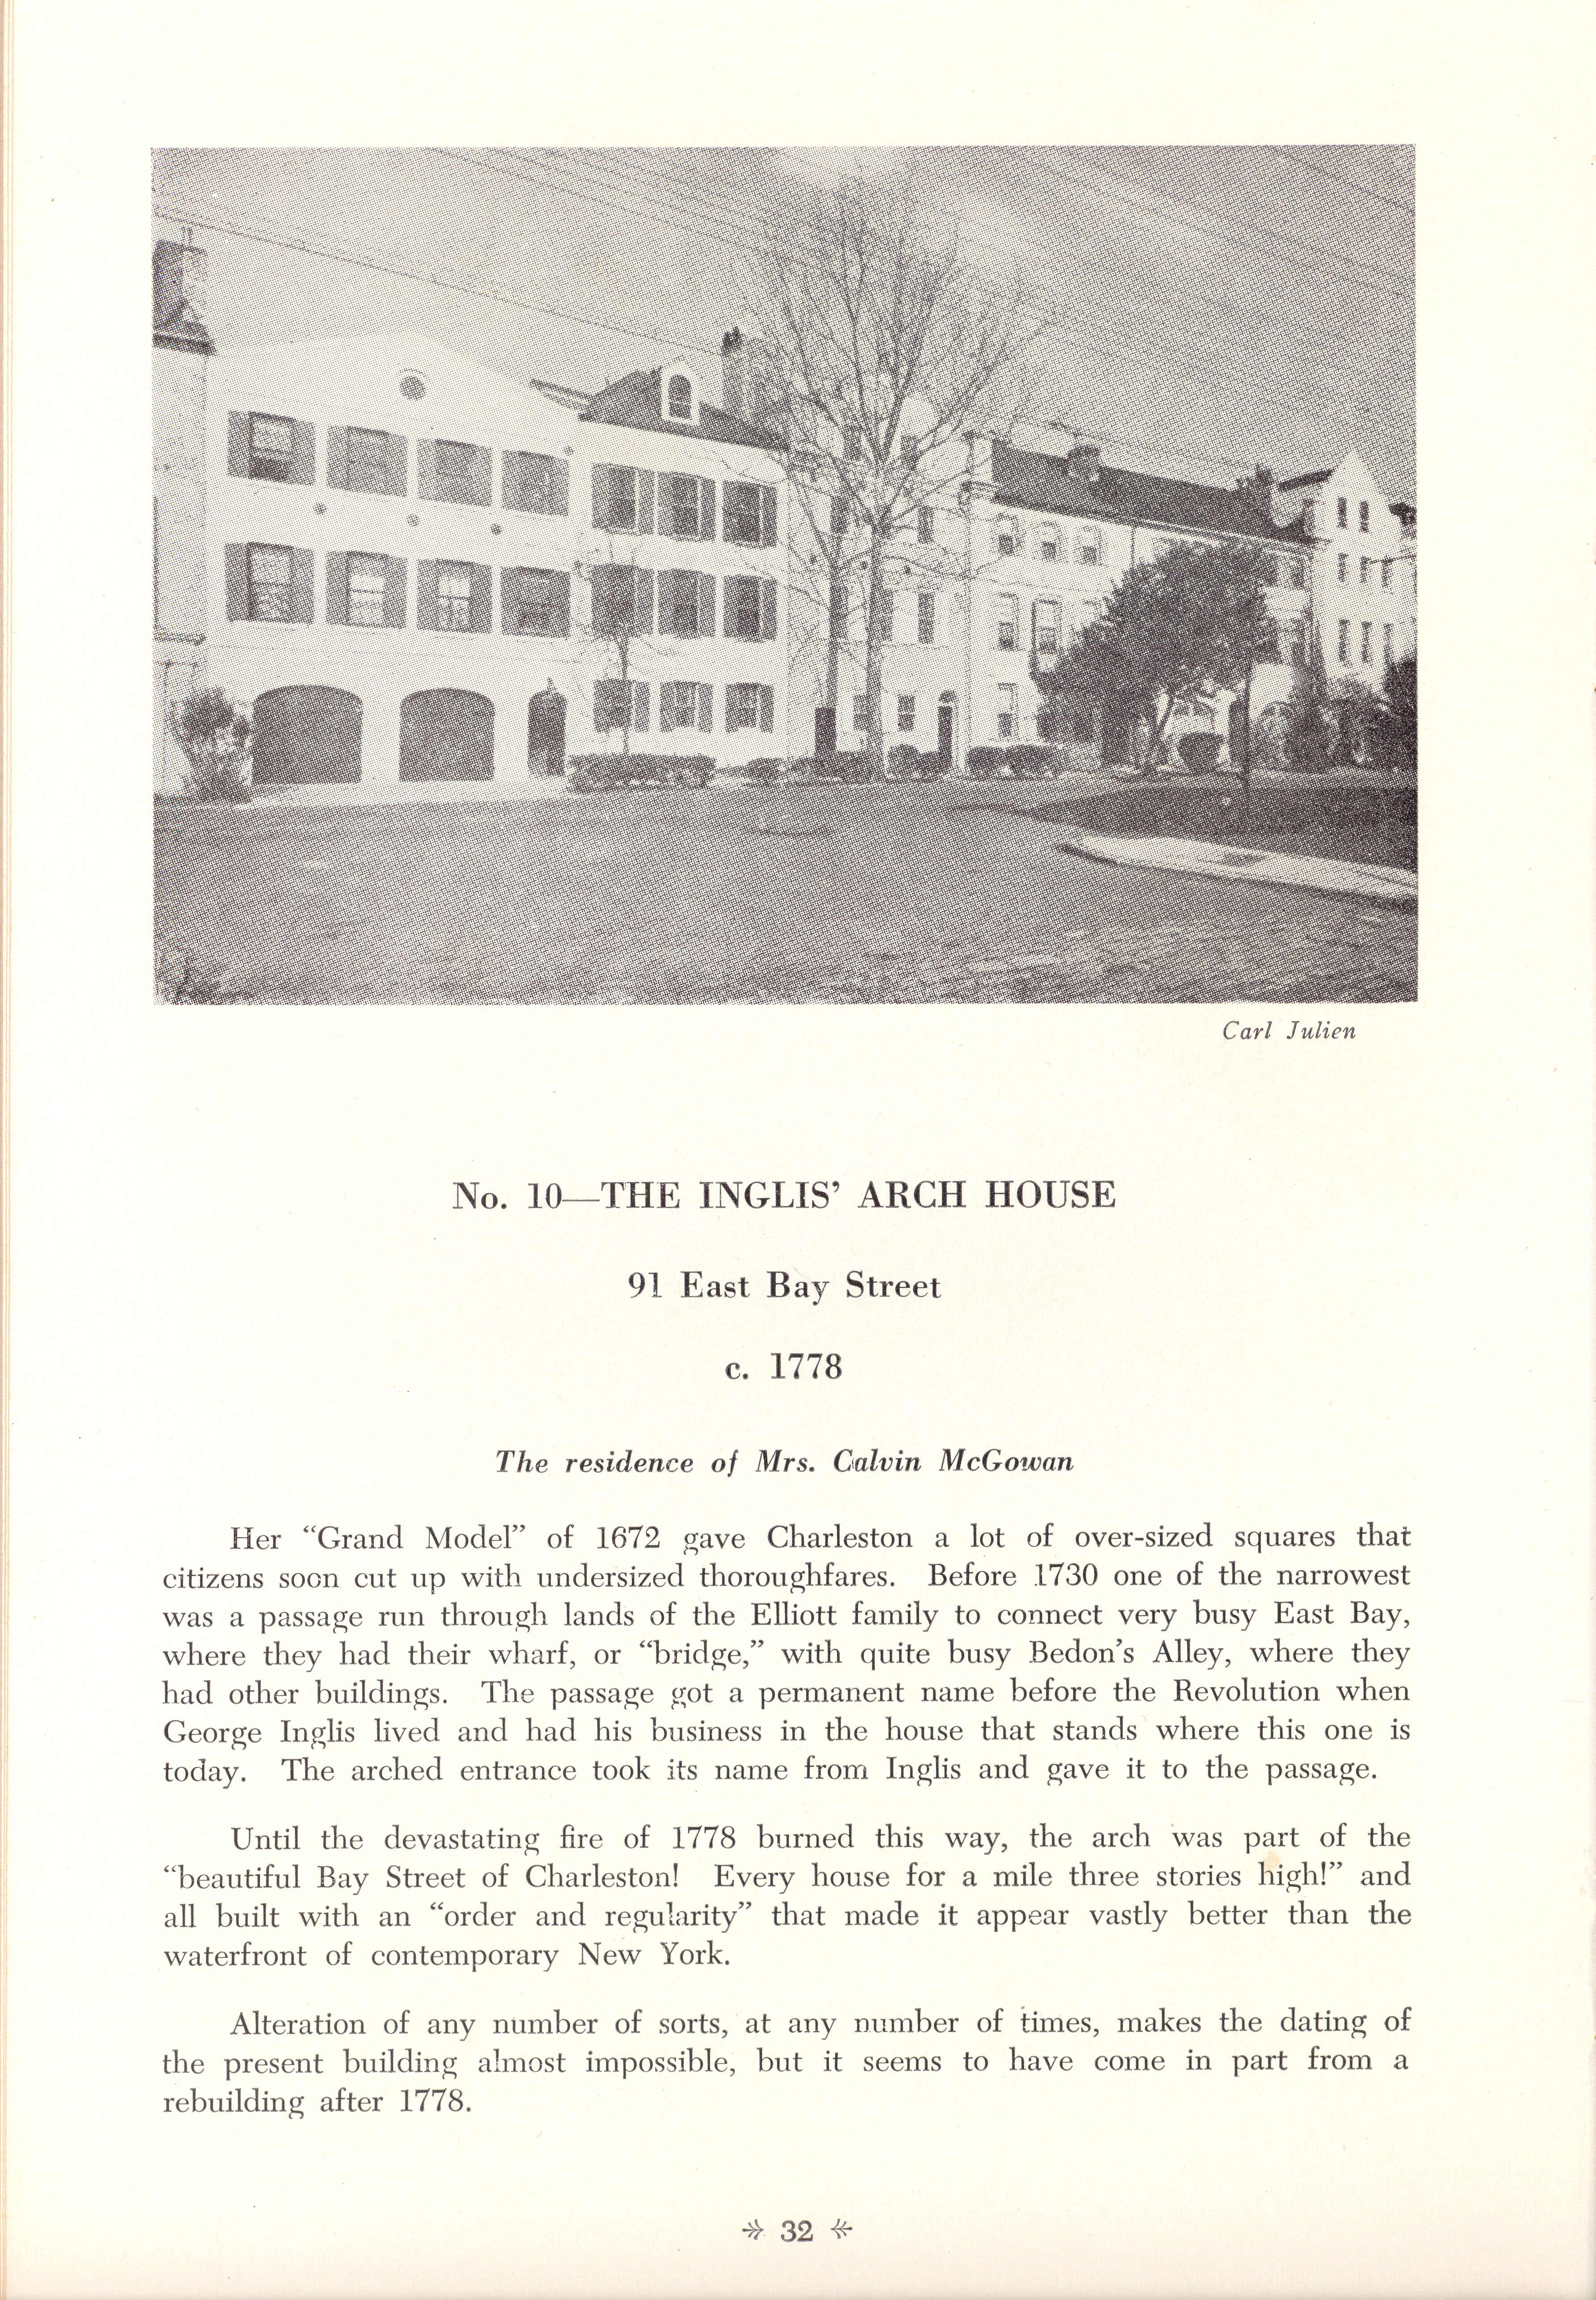 Page 32:  No. 10 - The Inglis Arch House, 91 East Bay Street, c. 1778